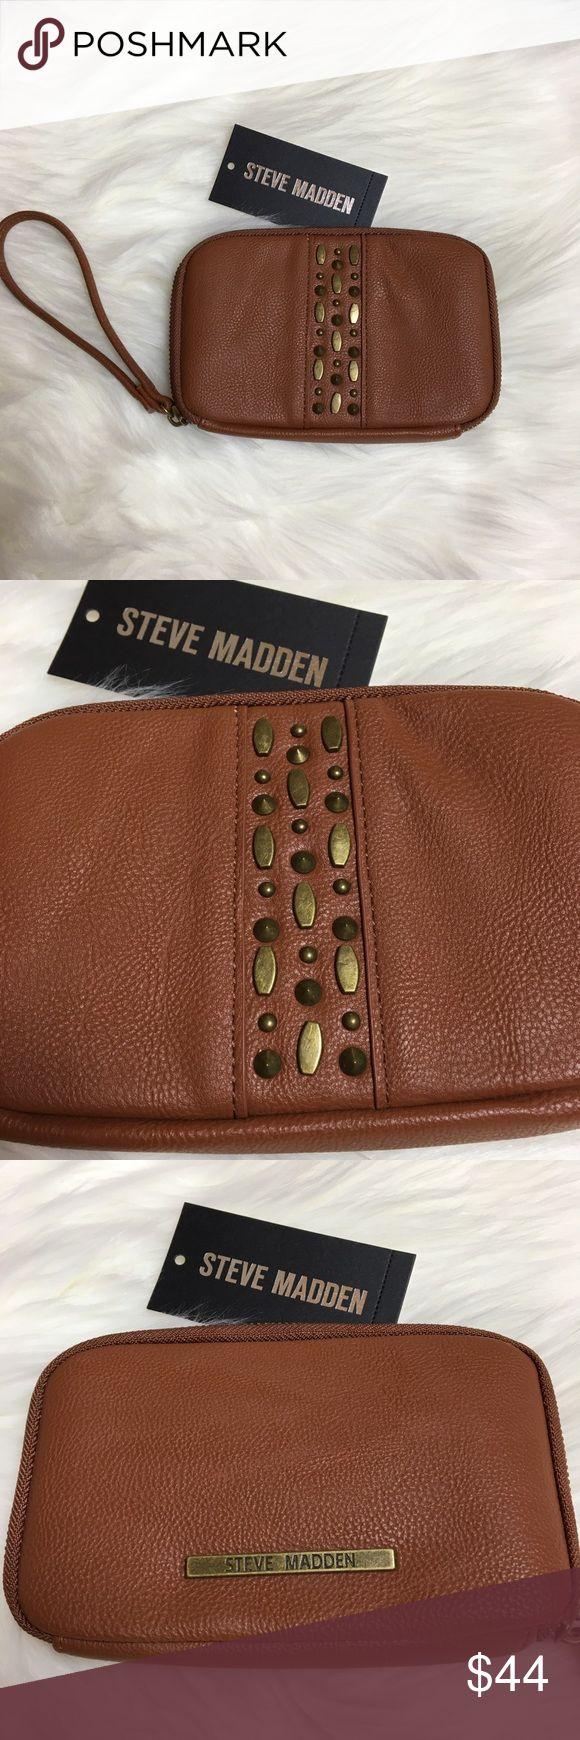 NWT Steve Madden Cognac Faux Leather Wristlet Brand new never used Mini Magnolia by Steve Madden. Color is called cognac. Studded design down center front of wristlet. Wrist strap is not detachable. 4 interior card slots, one clear ID card slot, two billfold sections, one zipper change section and one interior slide pocket. Tags are not physically attached as the plastic used to attached tag was interfering with the zipper, but it has never been used. Tags will be included inside the wallet…